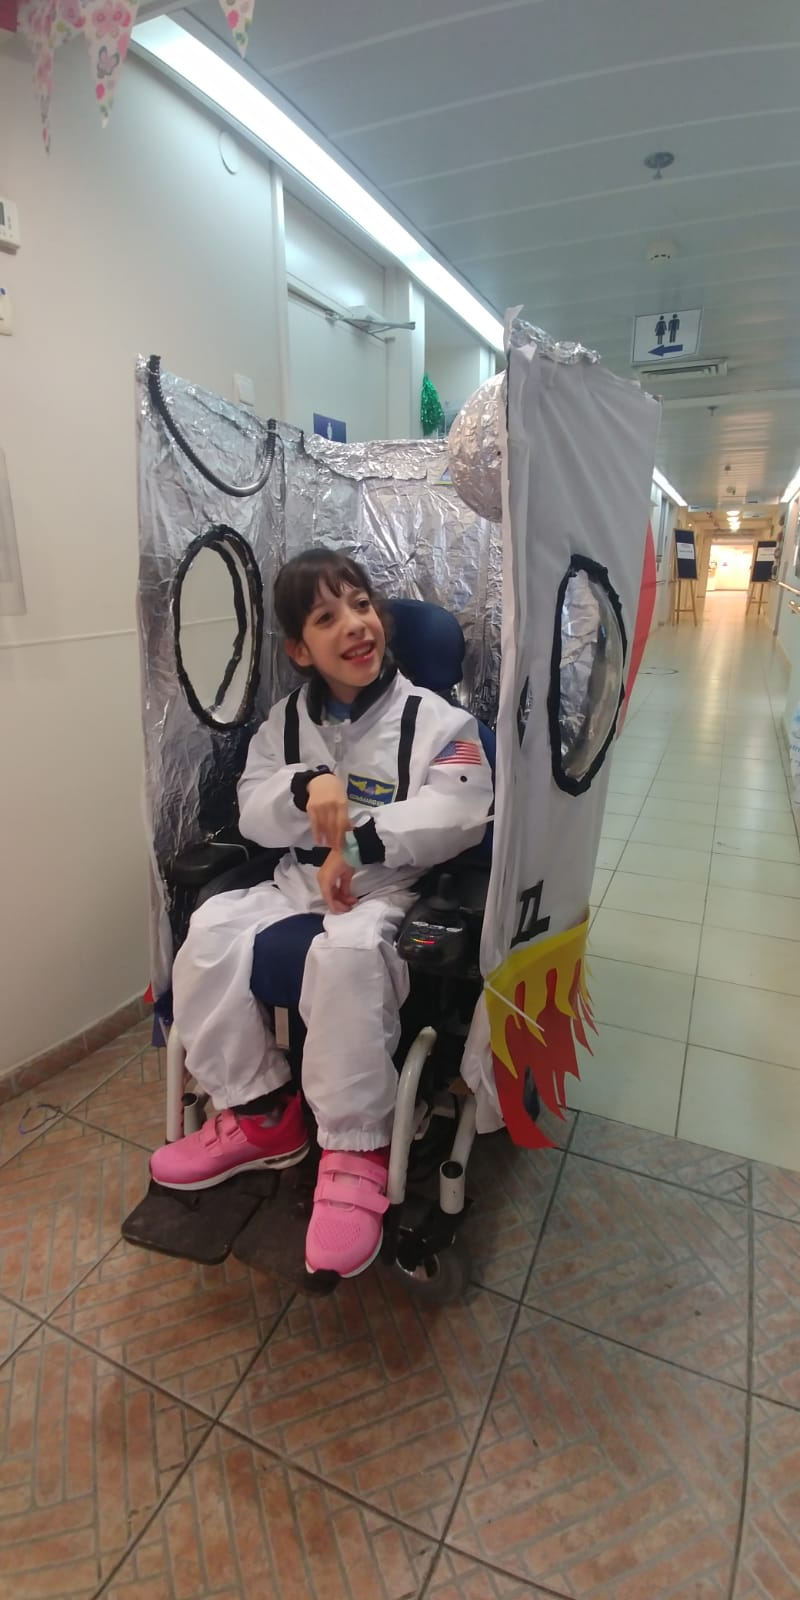 Roni the astronaut and her rocket ship: